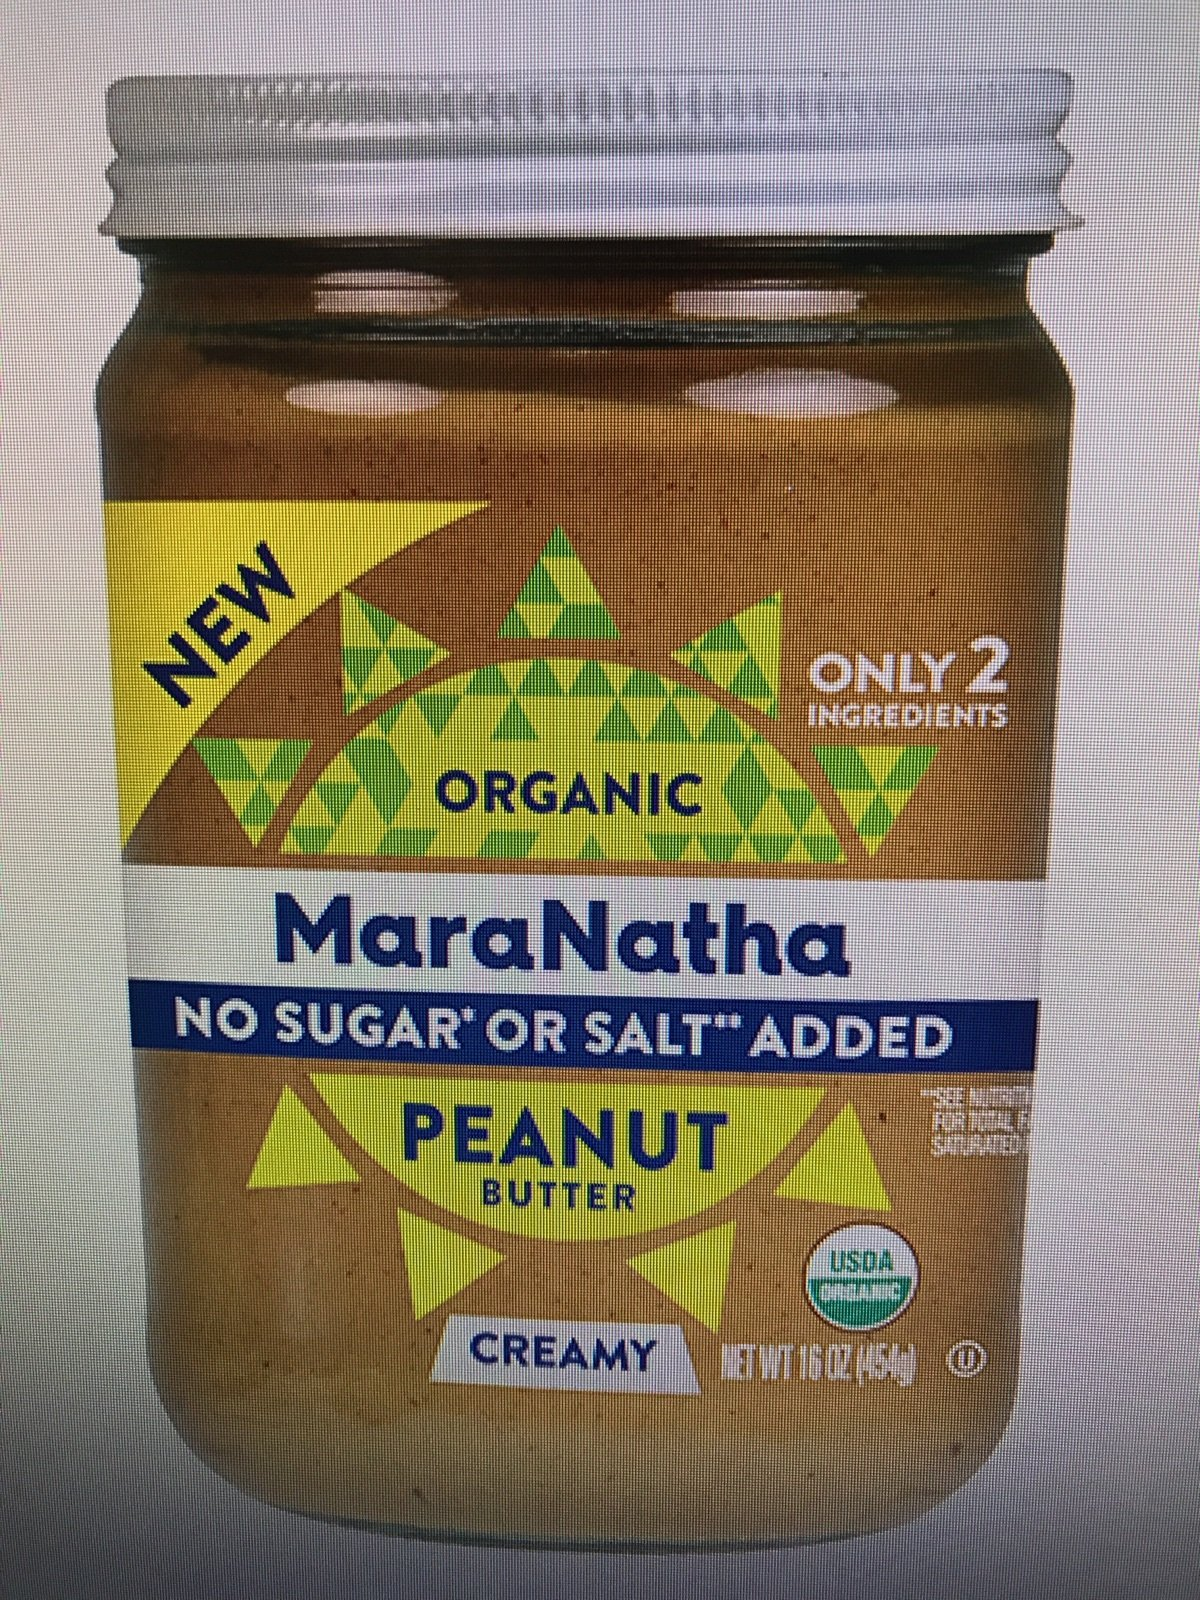 Maranatha Organic Creamy Peanut Butter no sugar or salt 16 oz (Pack of 3)